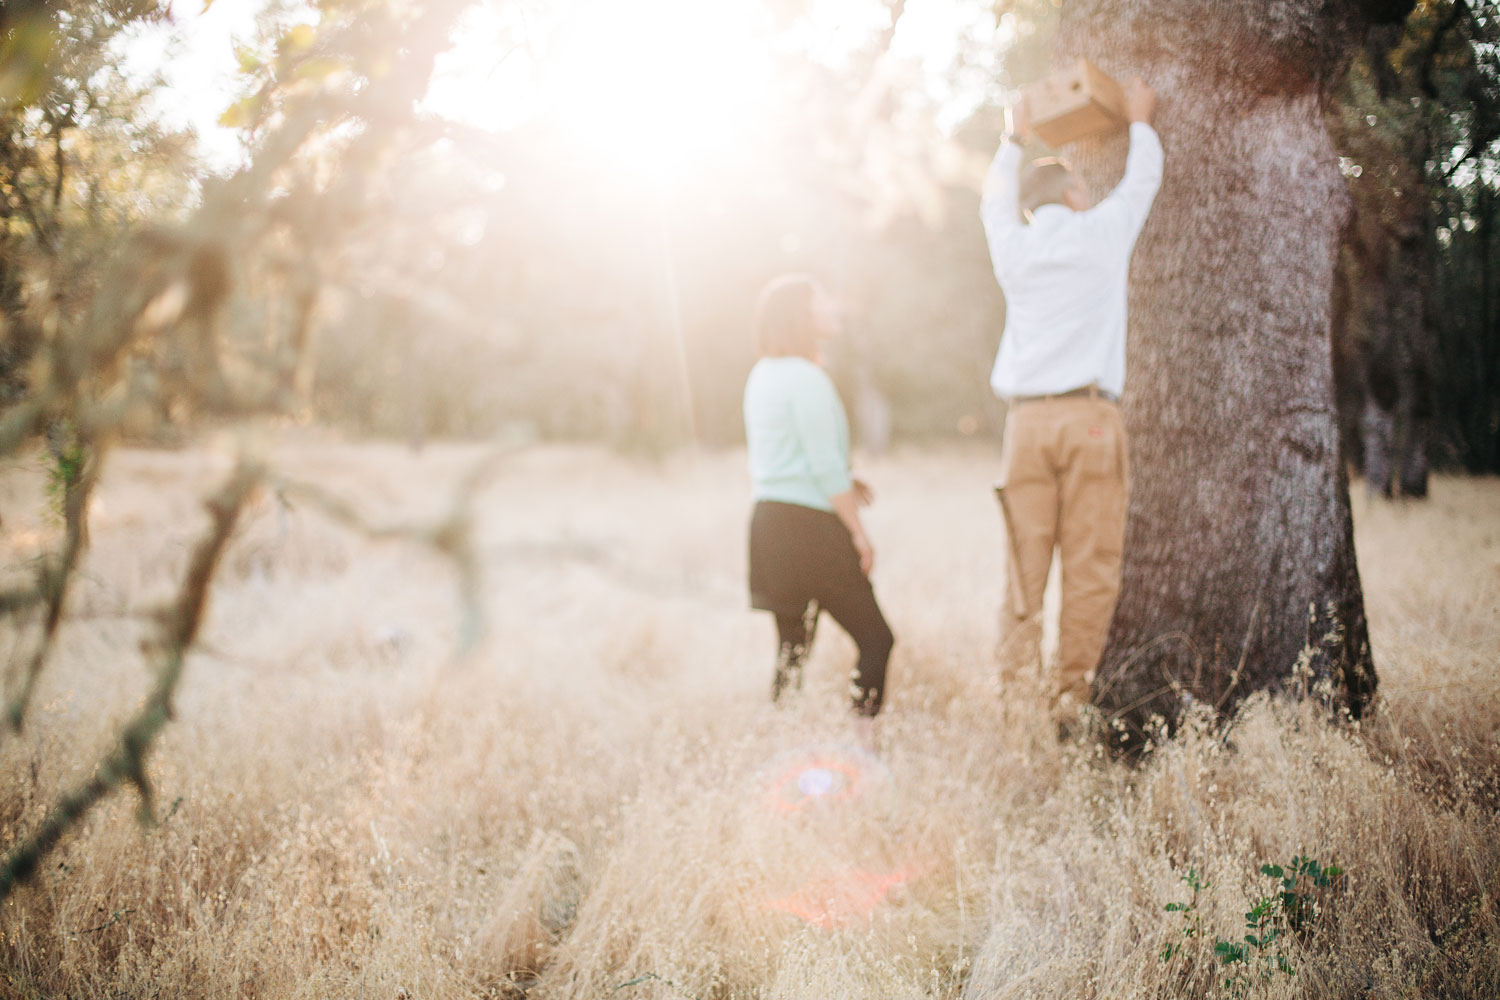 A couple hangs a birdhouse in honor of their late dog during a in-home lifestyle family photogro session in Sacramento, California.